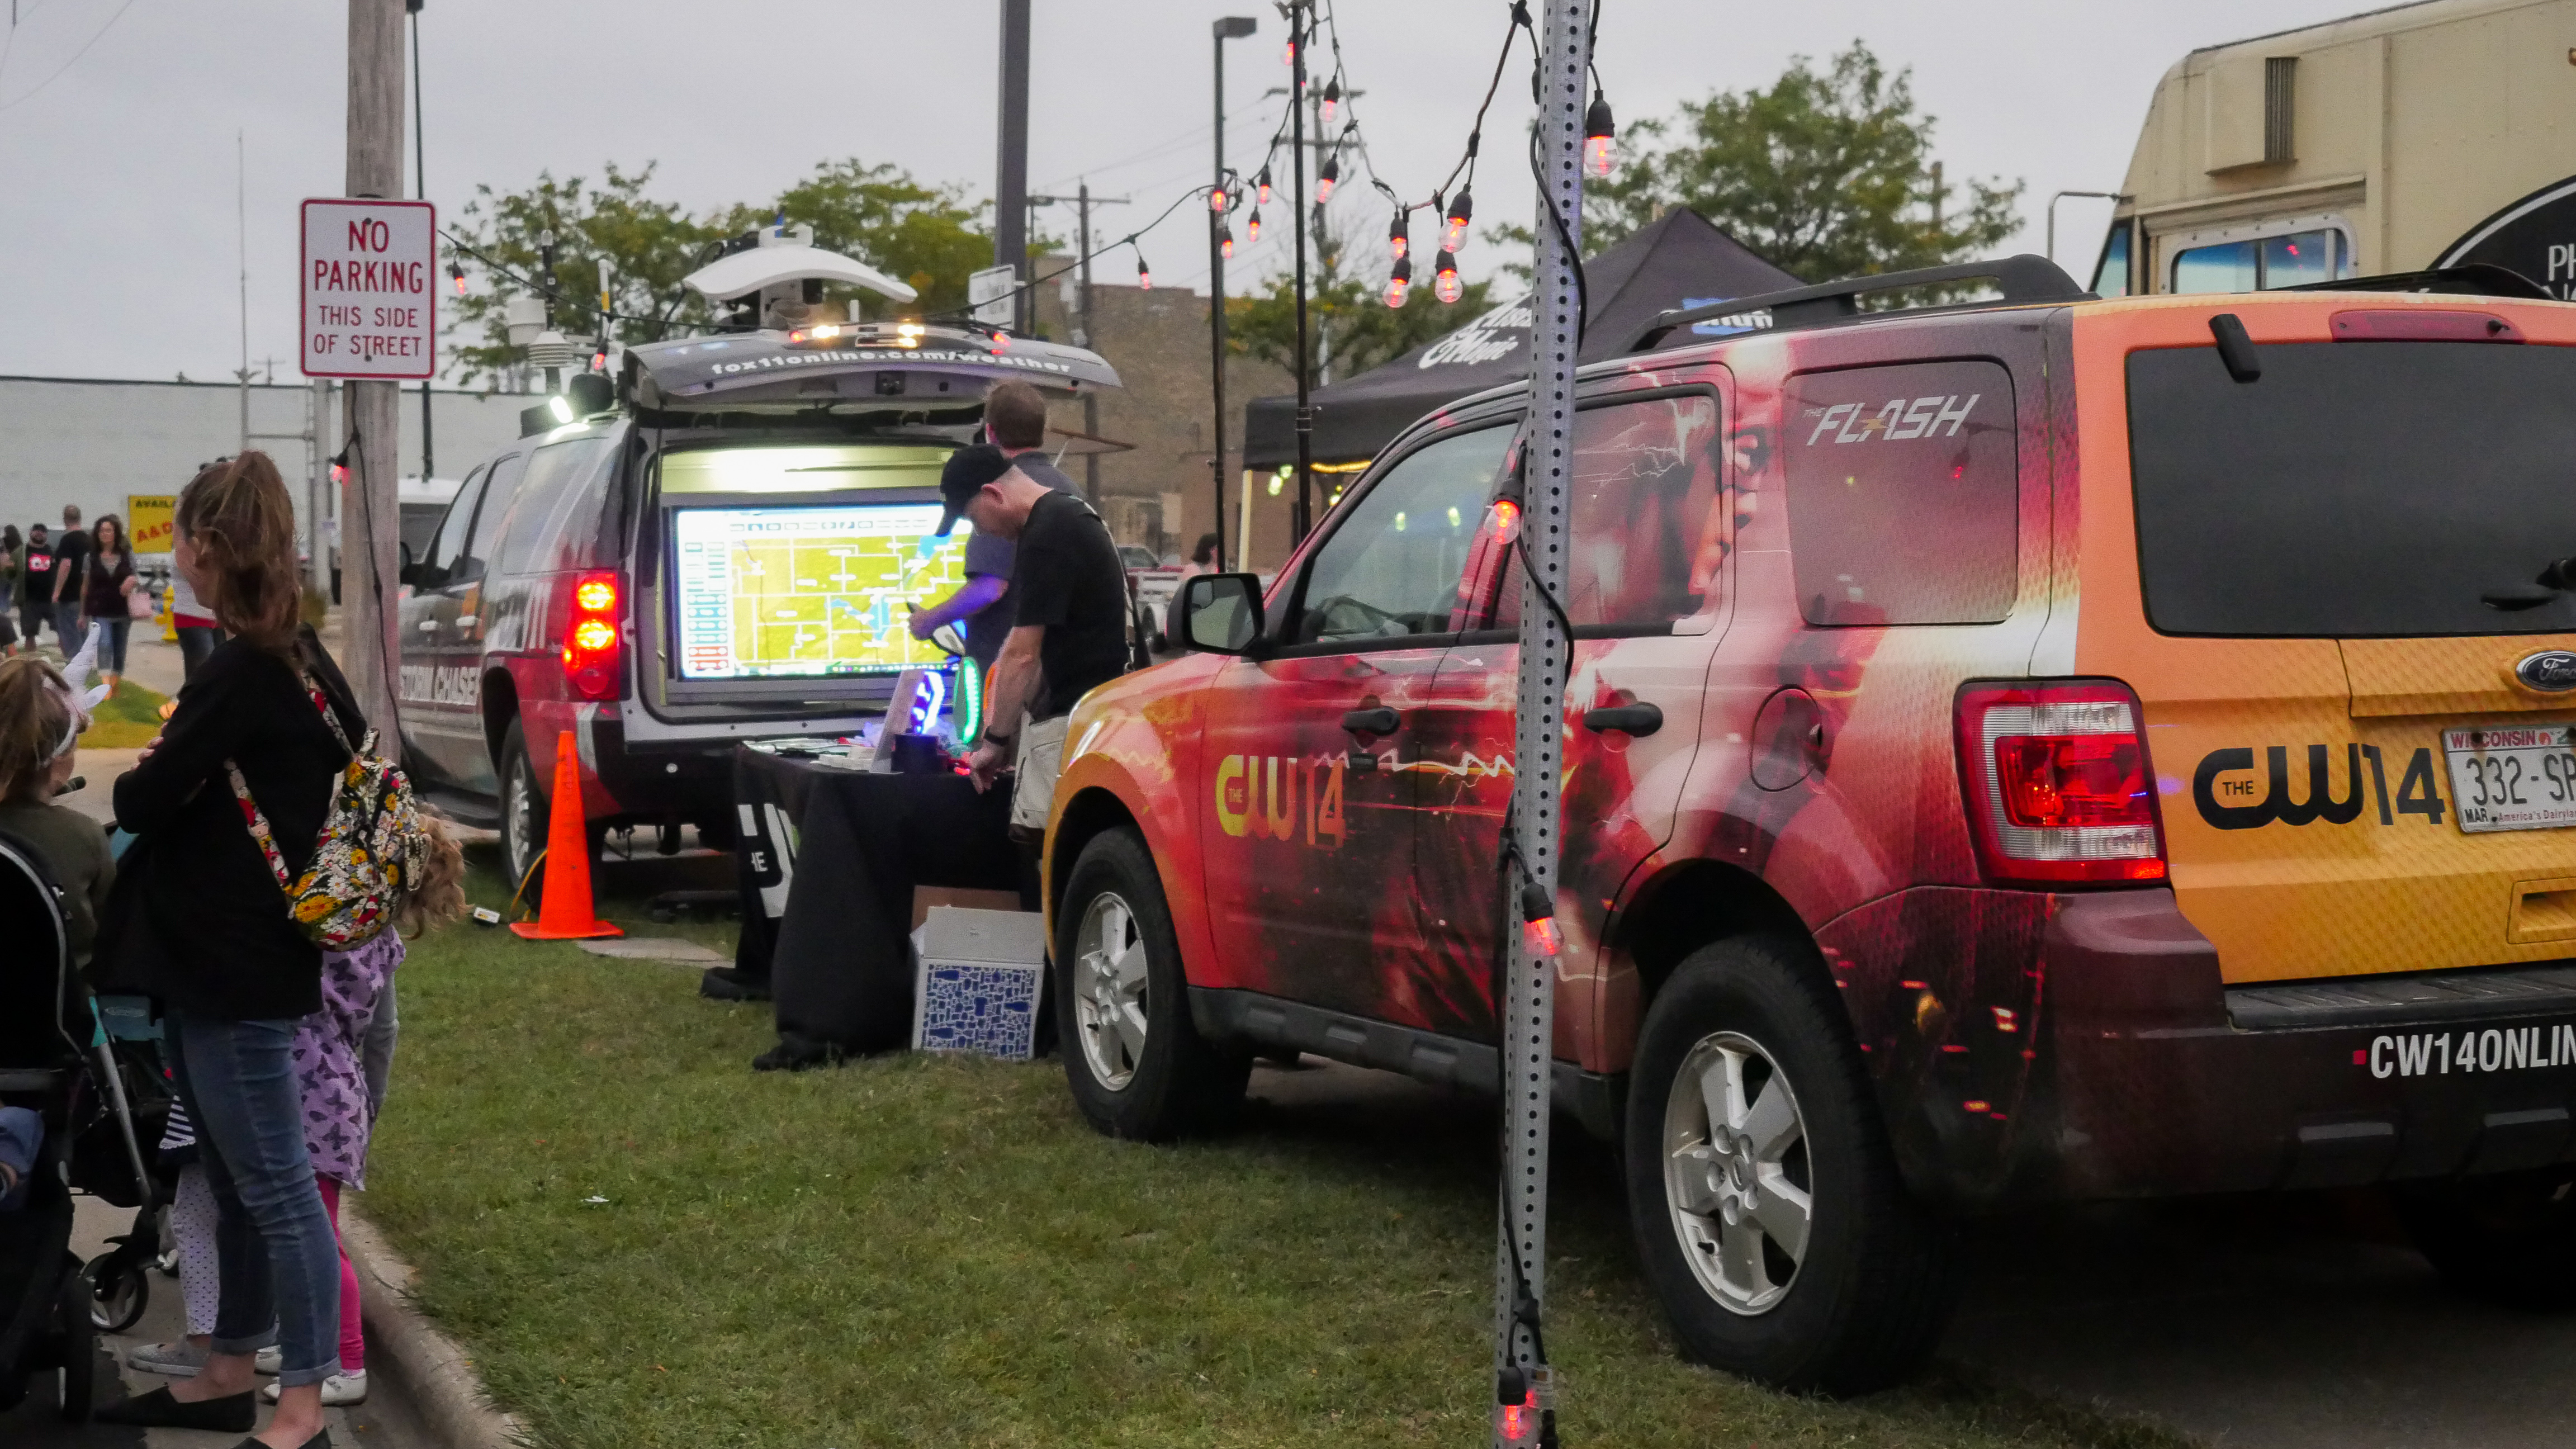 CW 14 and FOX 11 handing out glow sticks and more during the IgNight Market, September 21, 2019 (WCWF/ Beni Petersen)